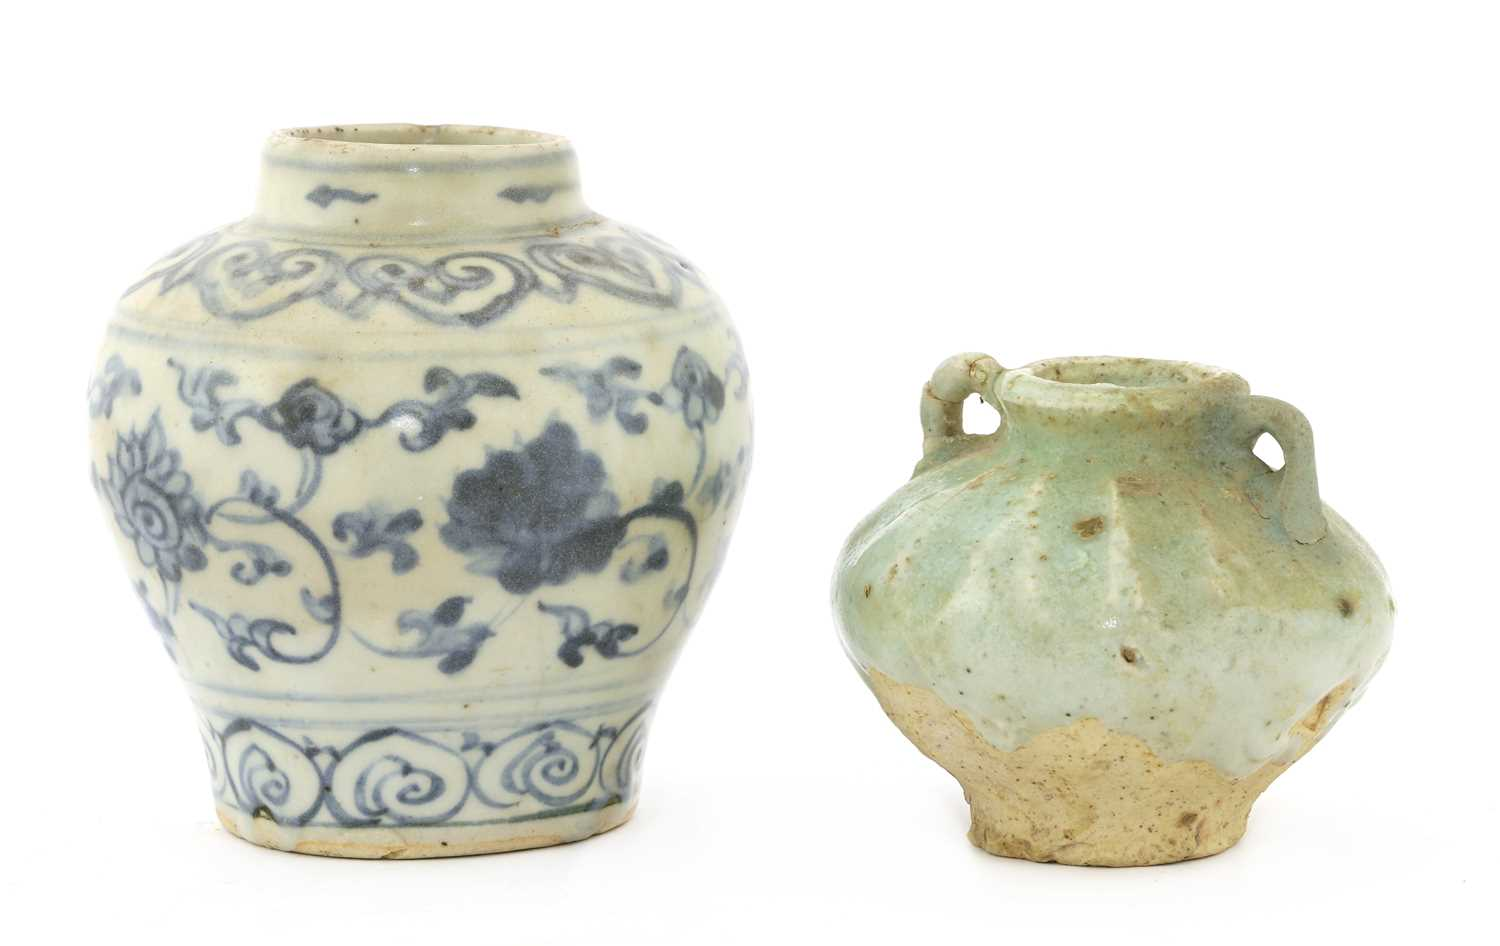 Lot 17 - A Chinese blue and white jarlet